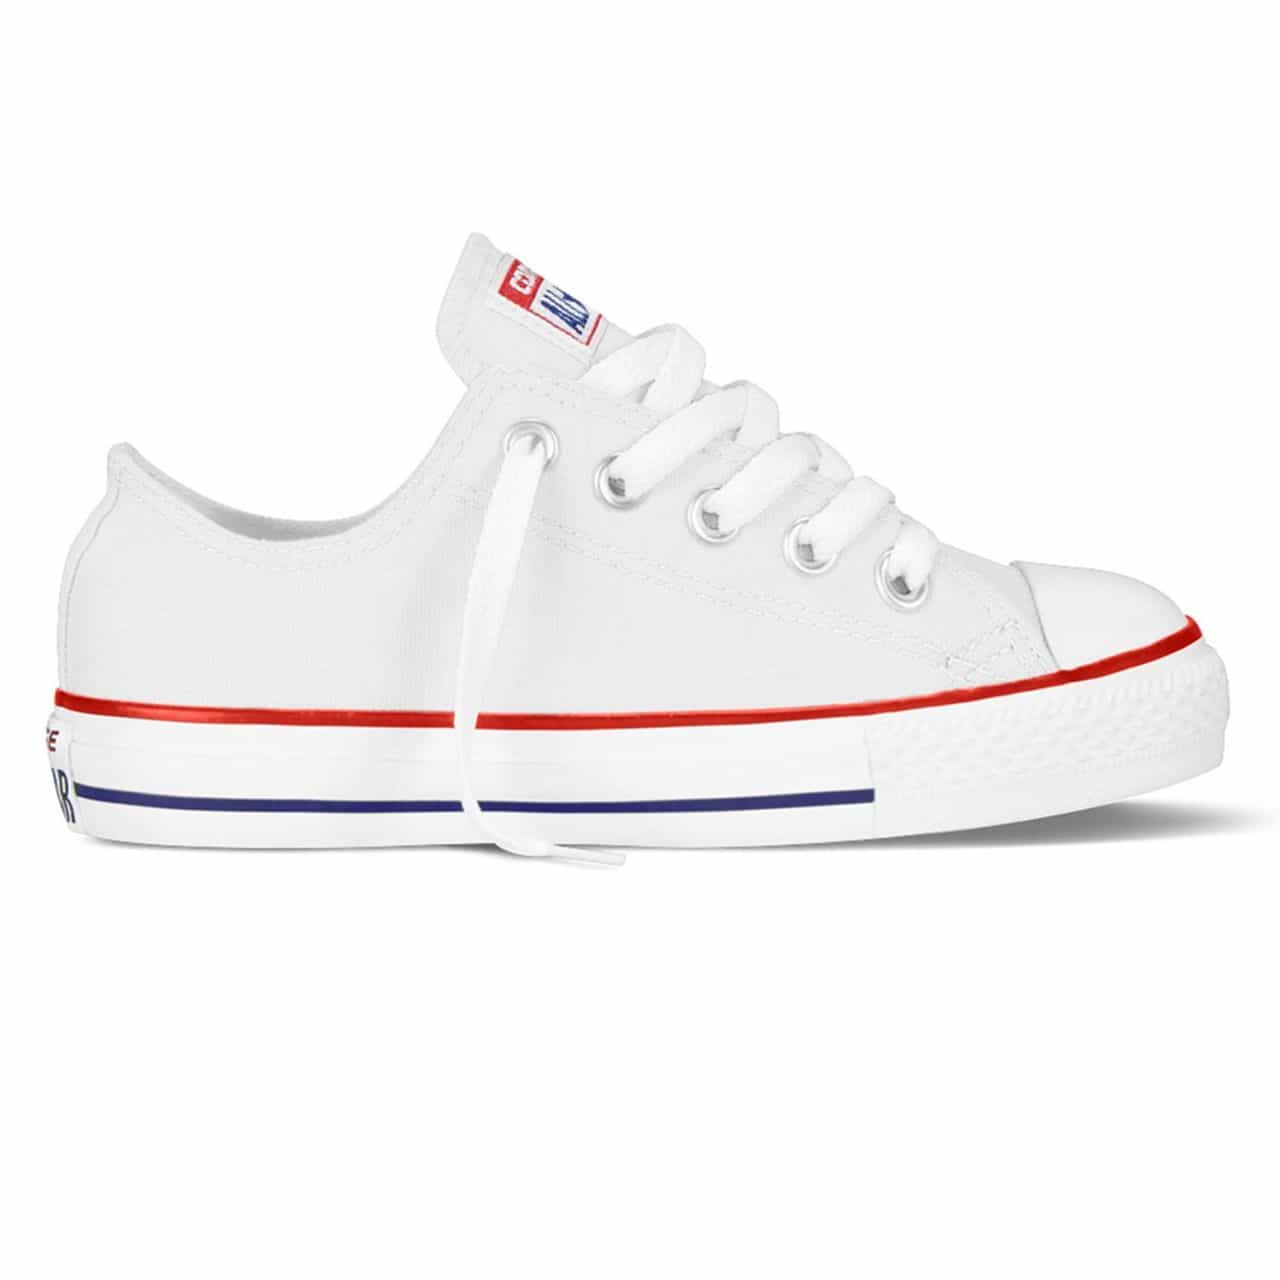 TENISI CONVERSE YTH CT ALL STAR OX (GS) - 3J256C 1